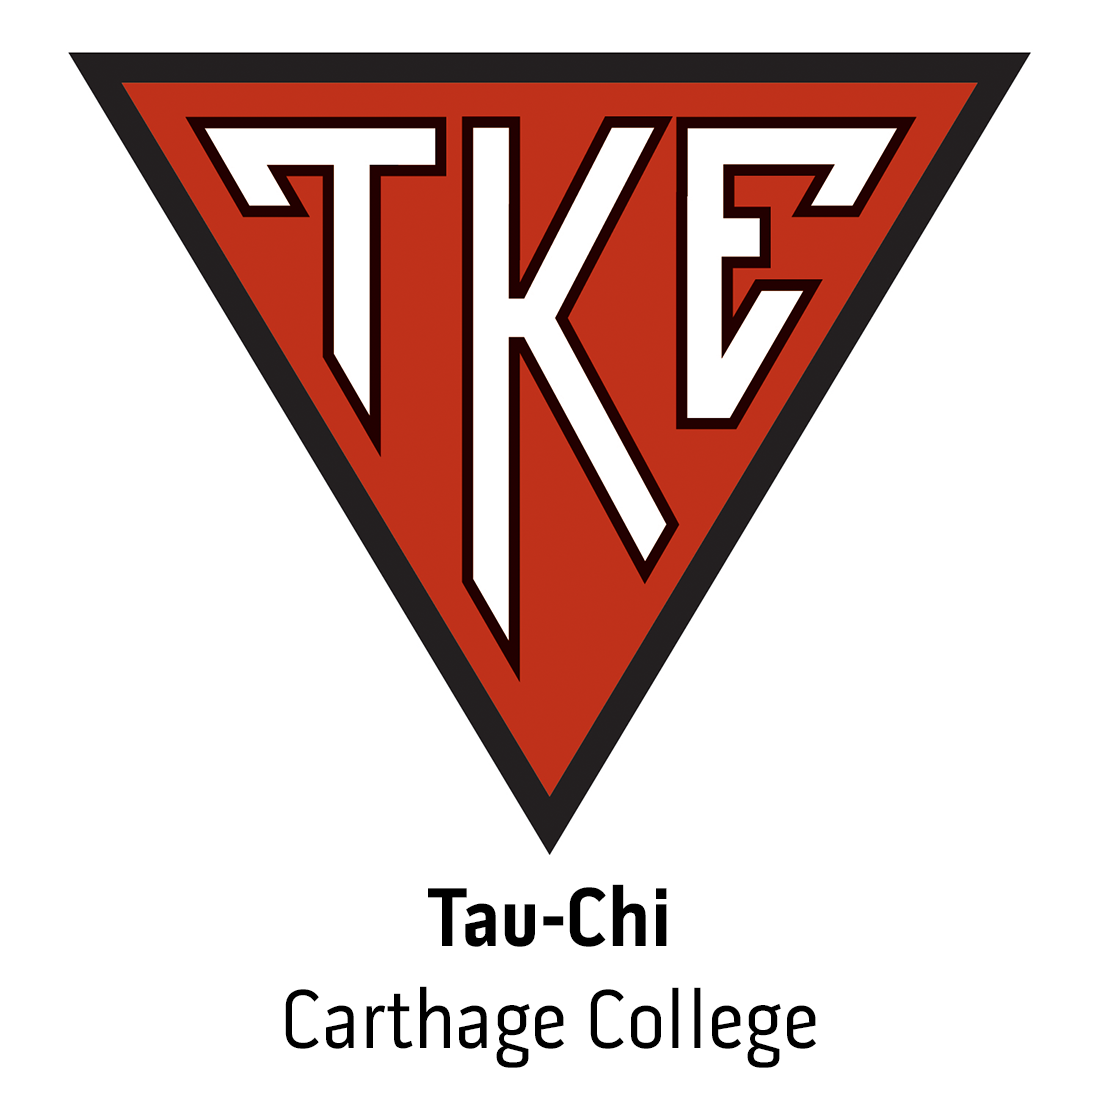 Tau-Chi Chapter at Carthage College